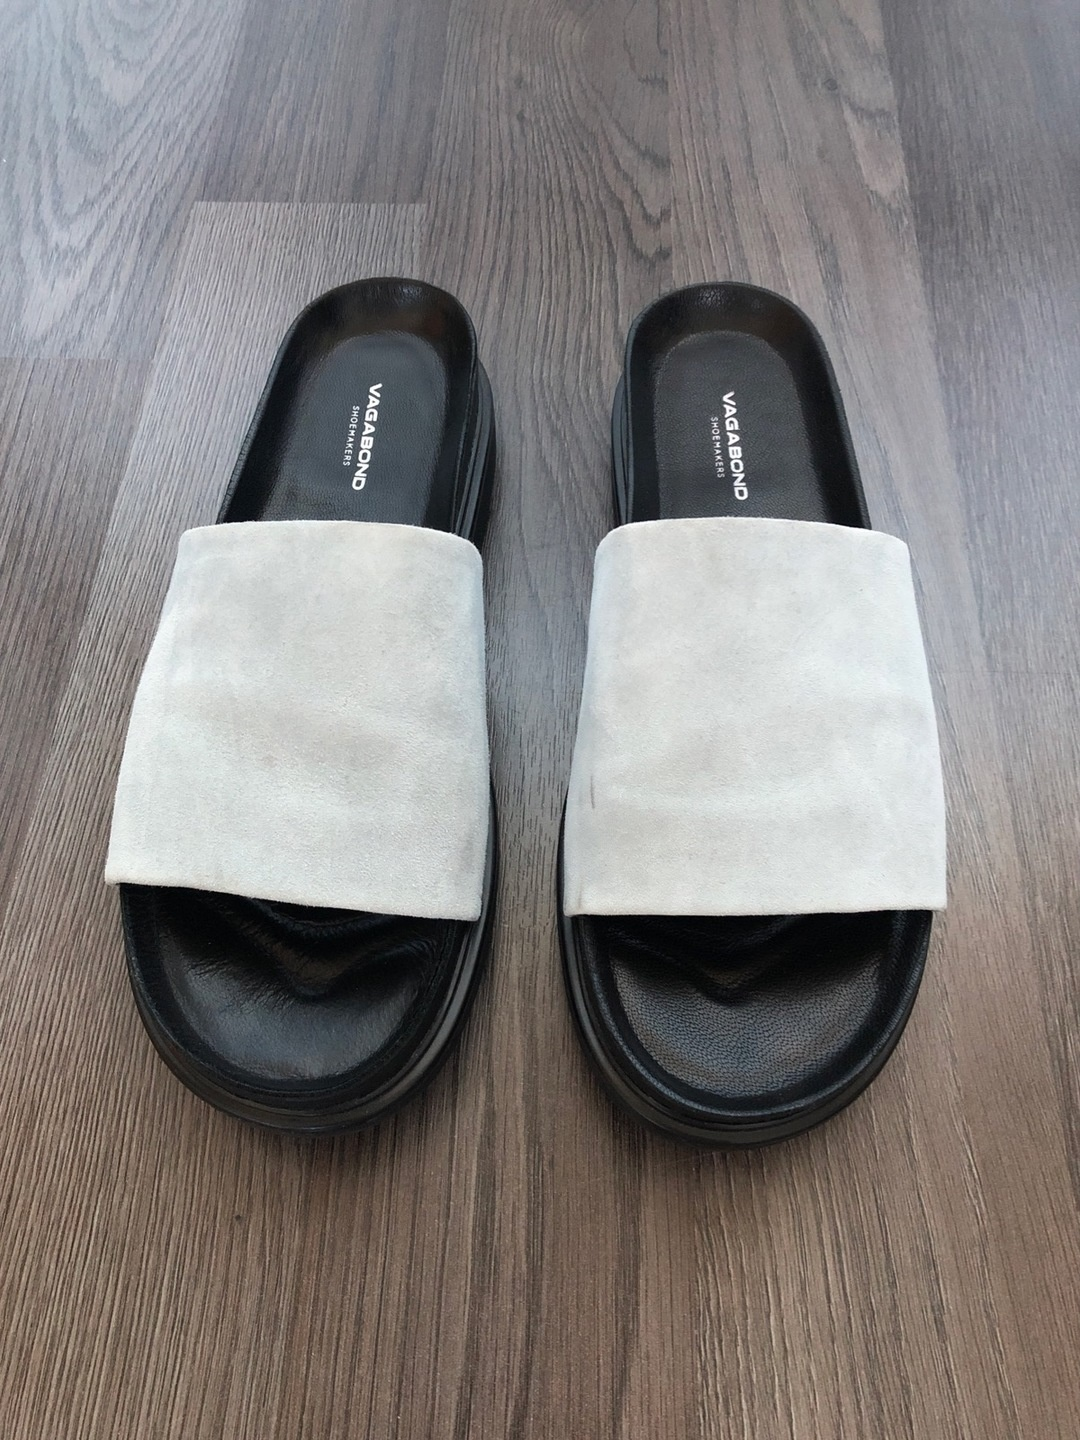 Women's sandals & slippers - VAGABOND photo 2